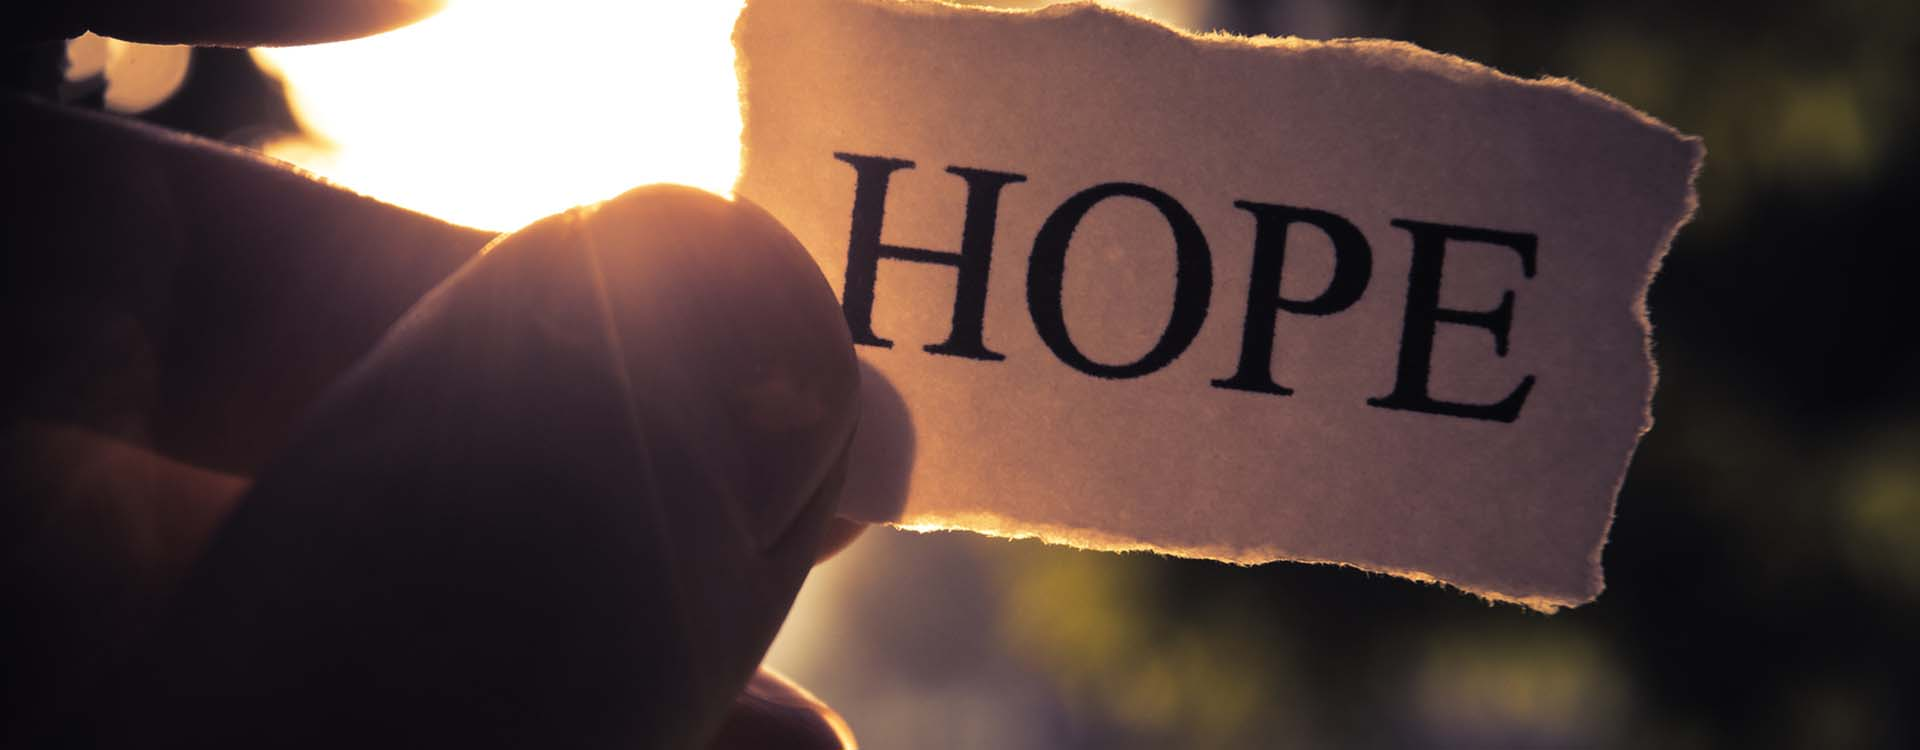 "Small piece of paper with the word ""Hope"" written on it"